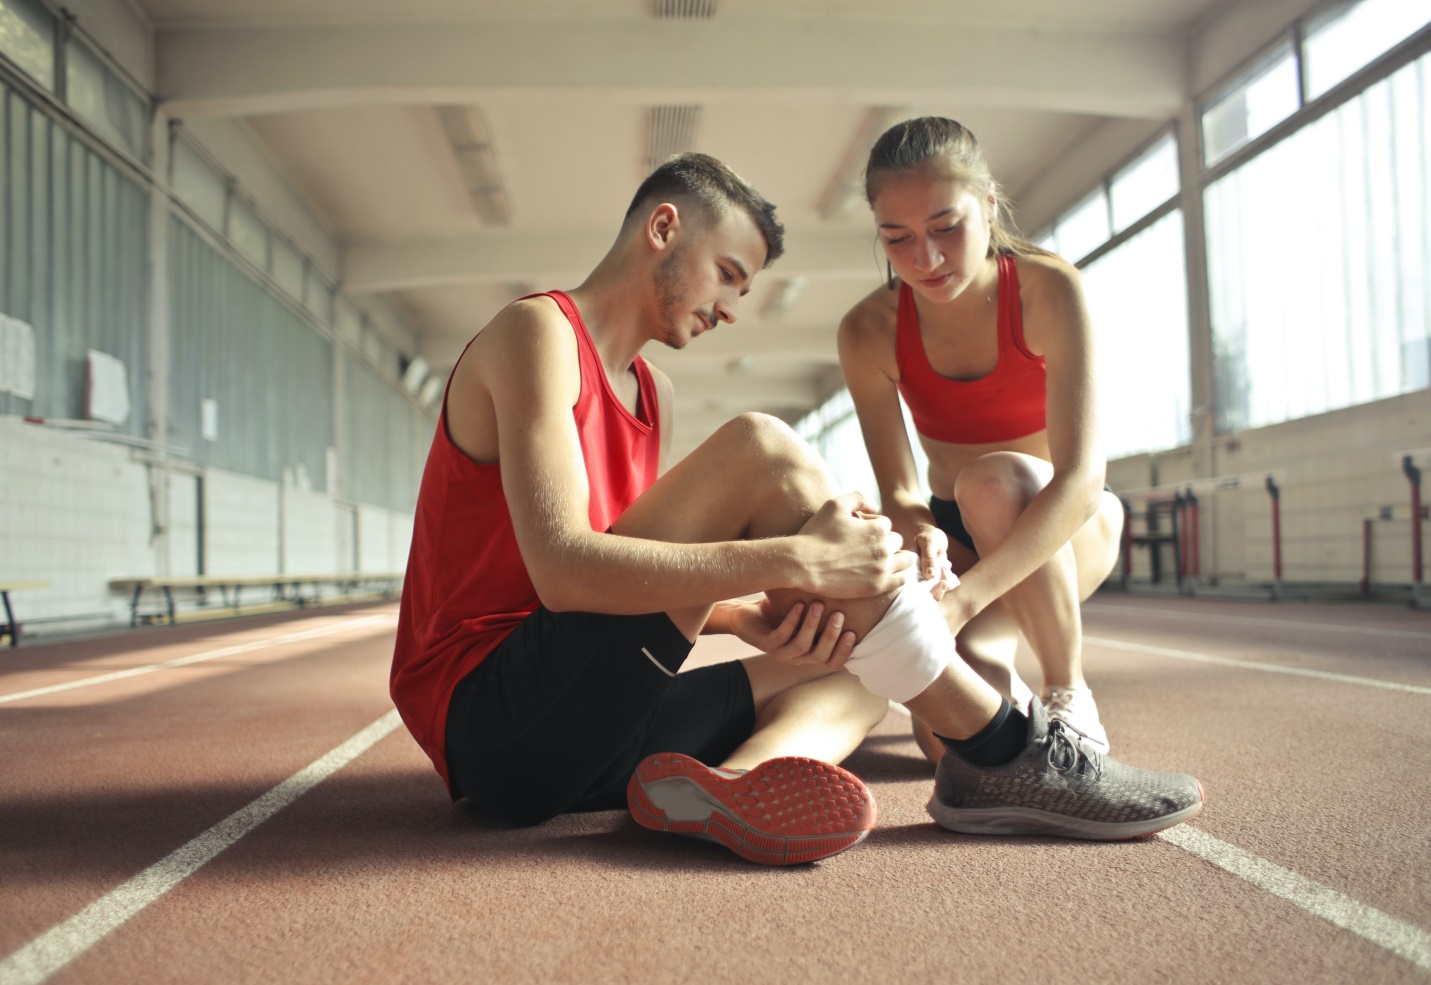 QUICK PAIN RELIEVERS FOR ATHLETES